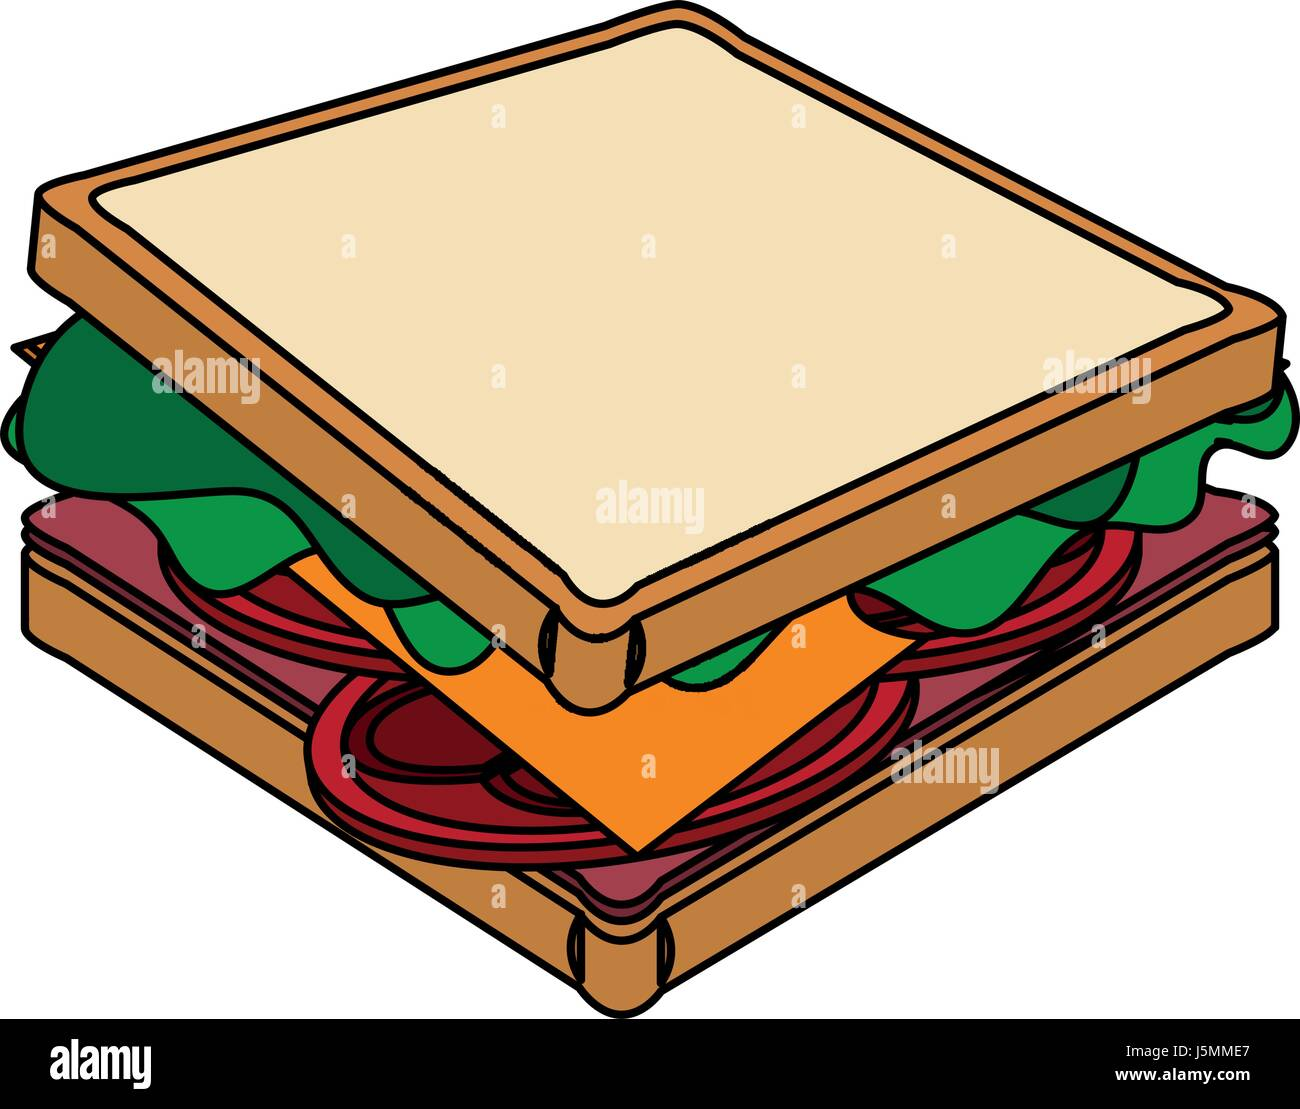 sandwich cartoon high resolution stock photography and images alamy https www alamy com stock photo color image cartoon side view bread sandwich 141211343 html